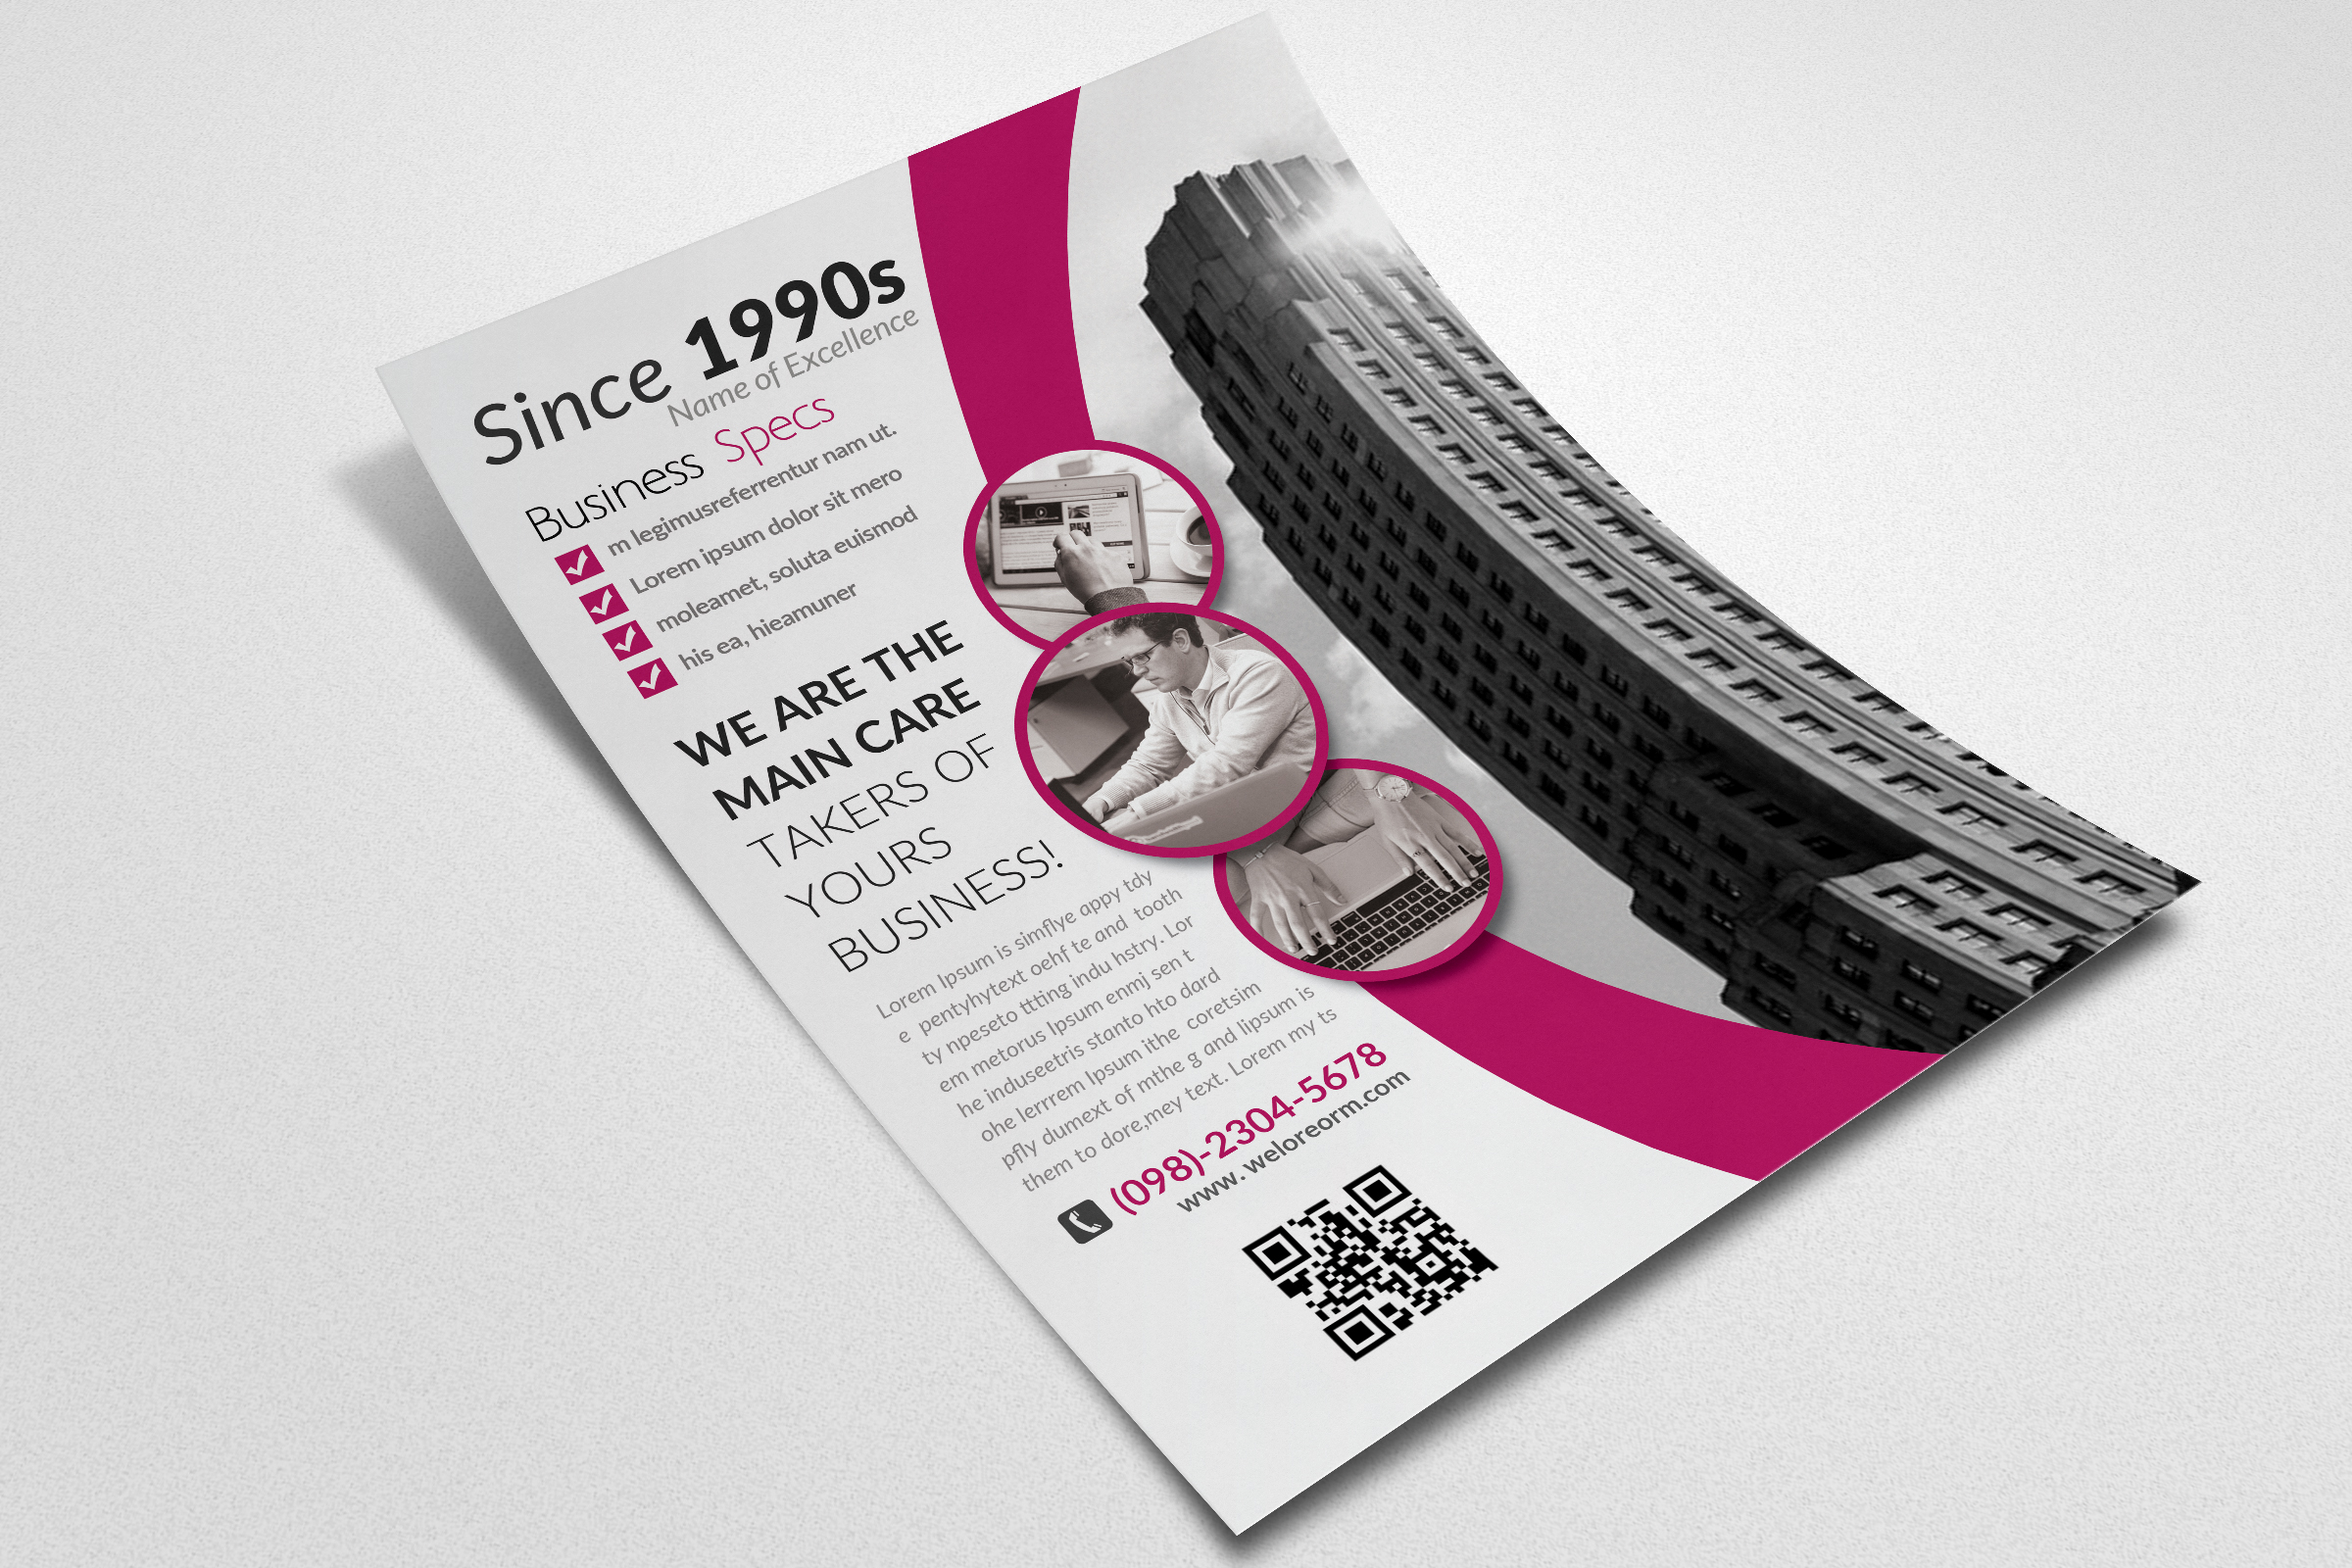 Marketing Consulting Group Flyer example image 2